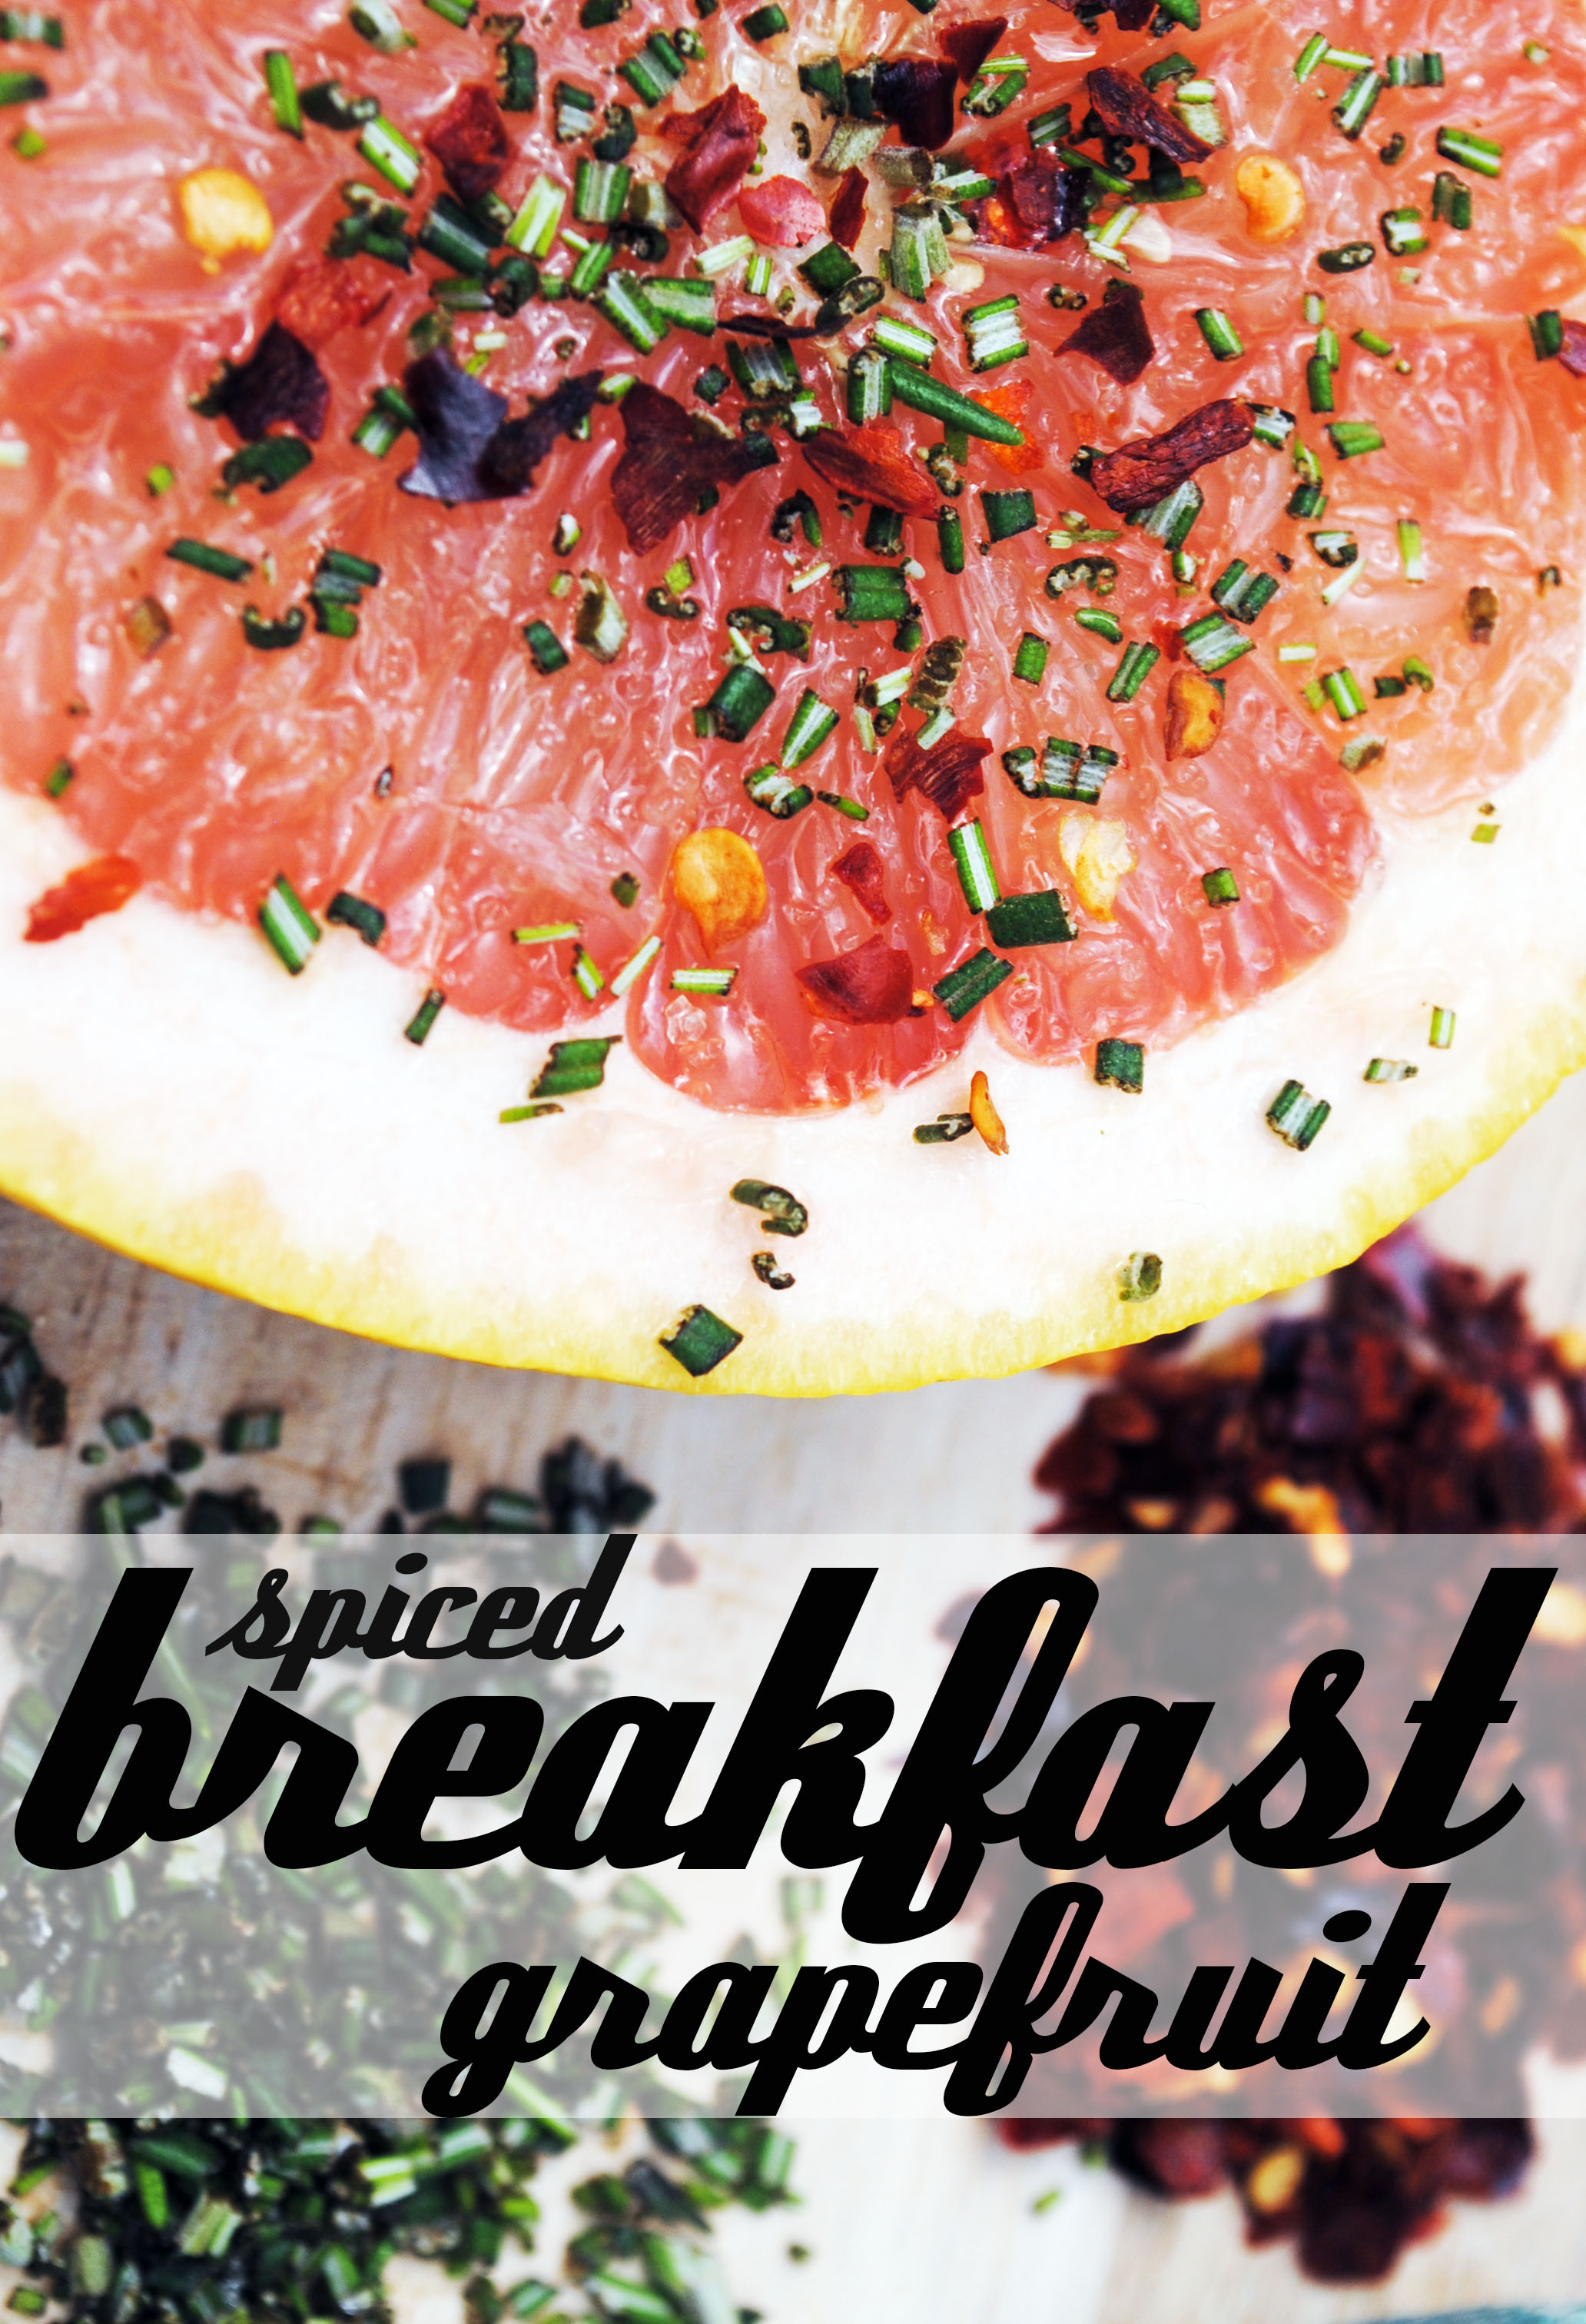 Spiced breakfast grapefruit.